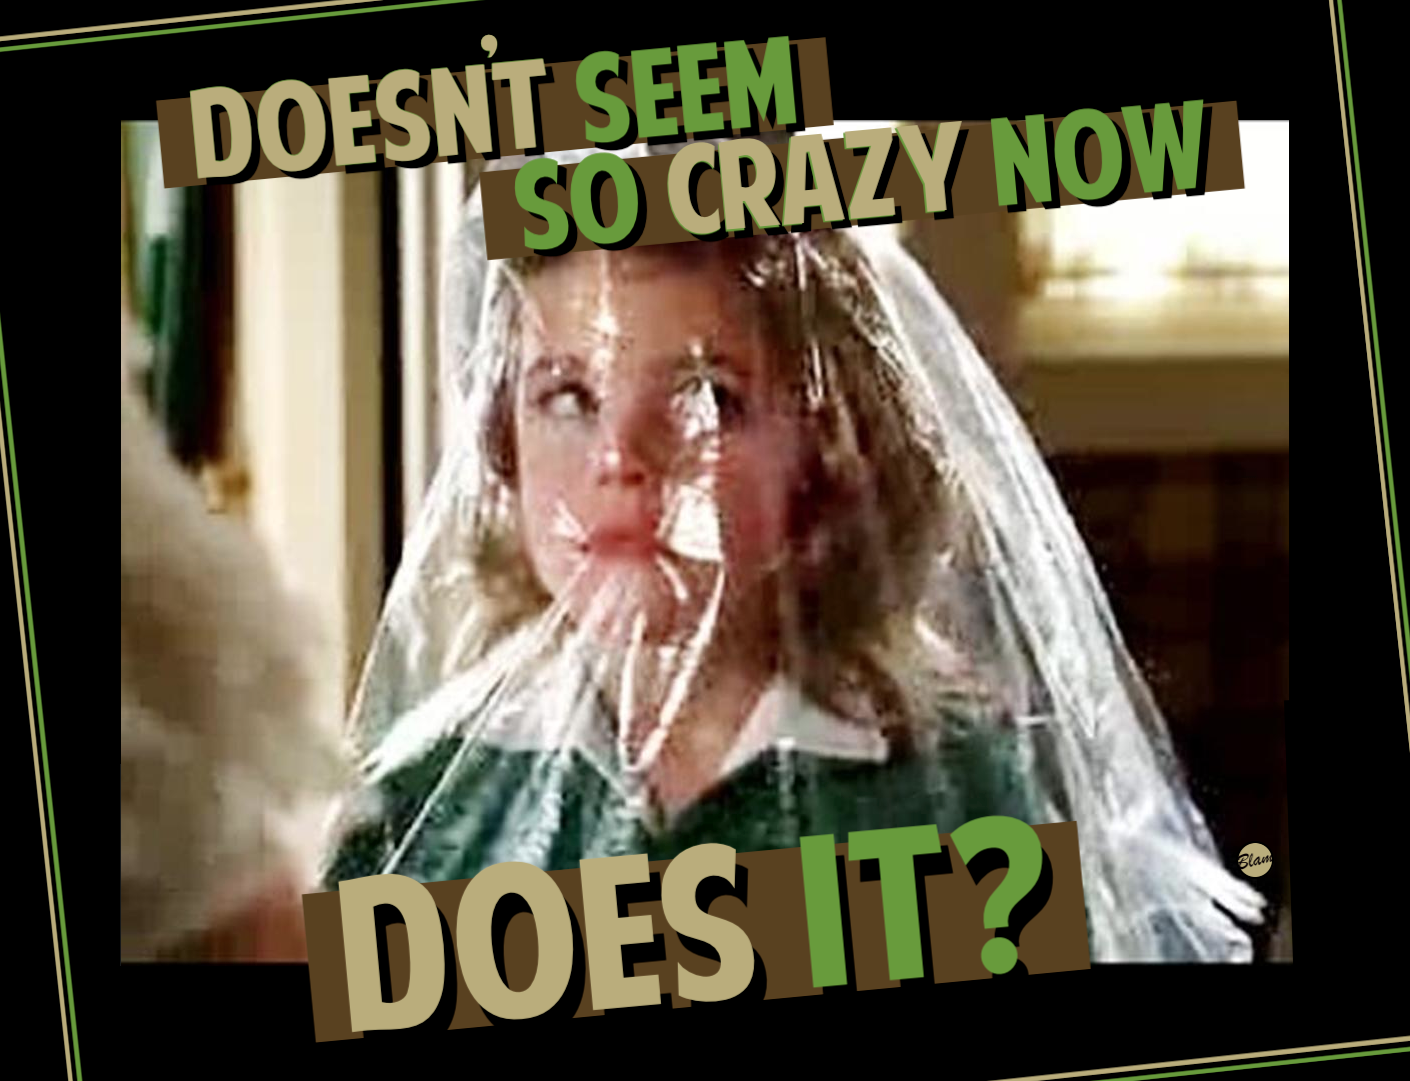 Little Sally Draper inside plastic bag from dry cleaners / 'Doesn't Seem So Crazy Now, Does It?'